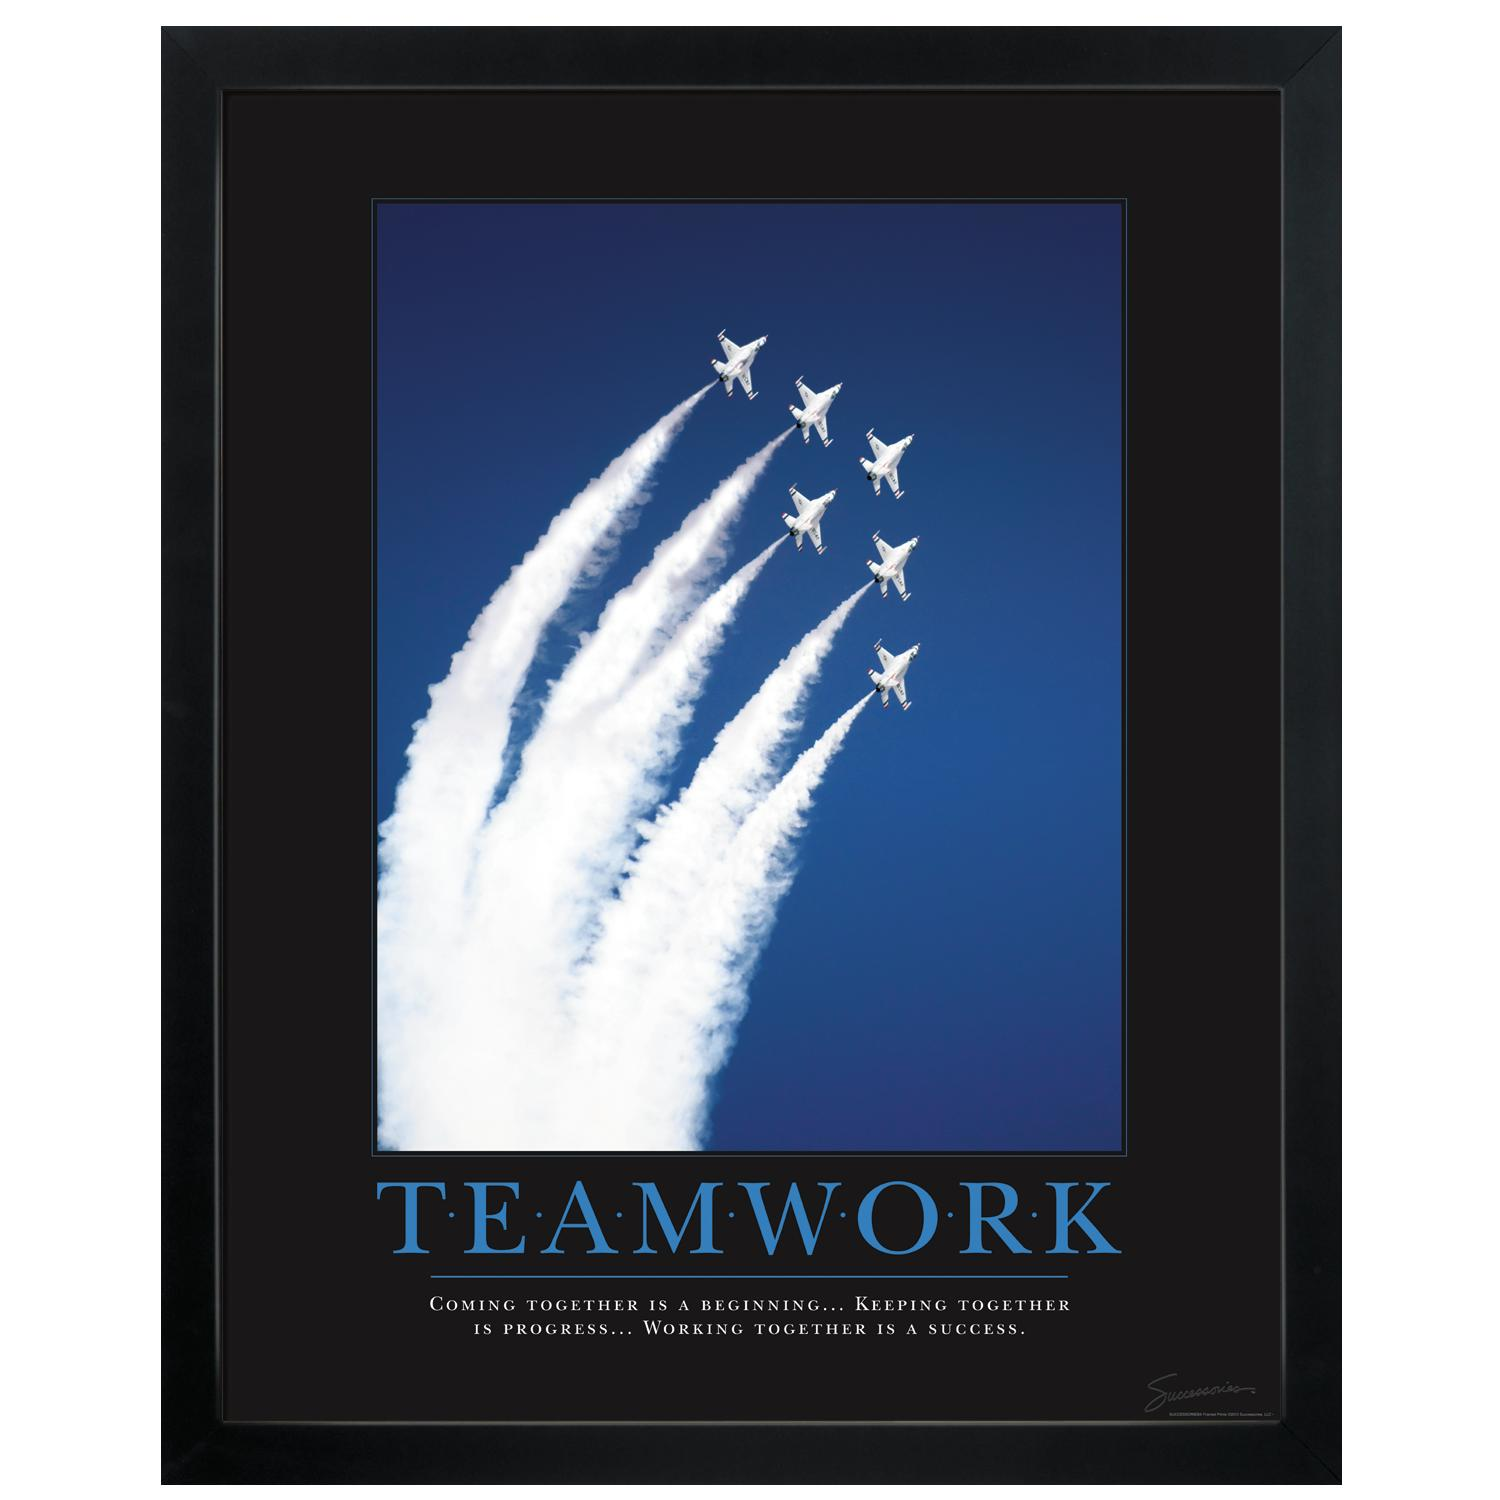 Motivational Quotes For Sports Teams: Motivational Teamwork Quotes For Office. QuotesGram